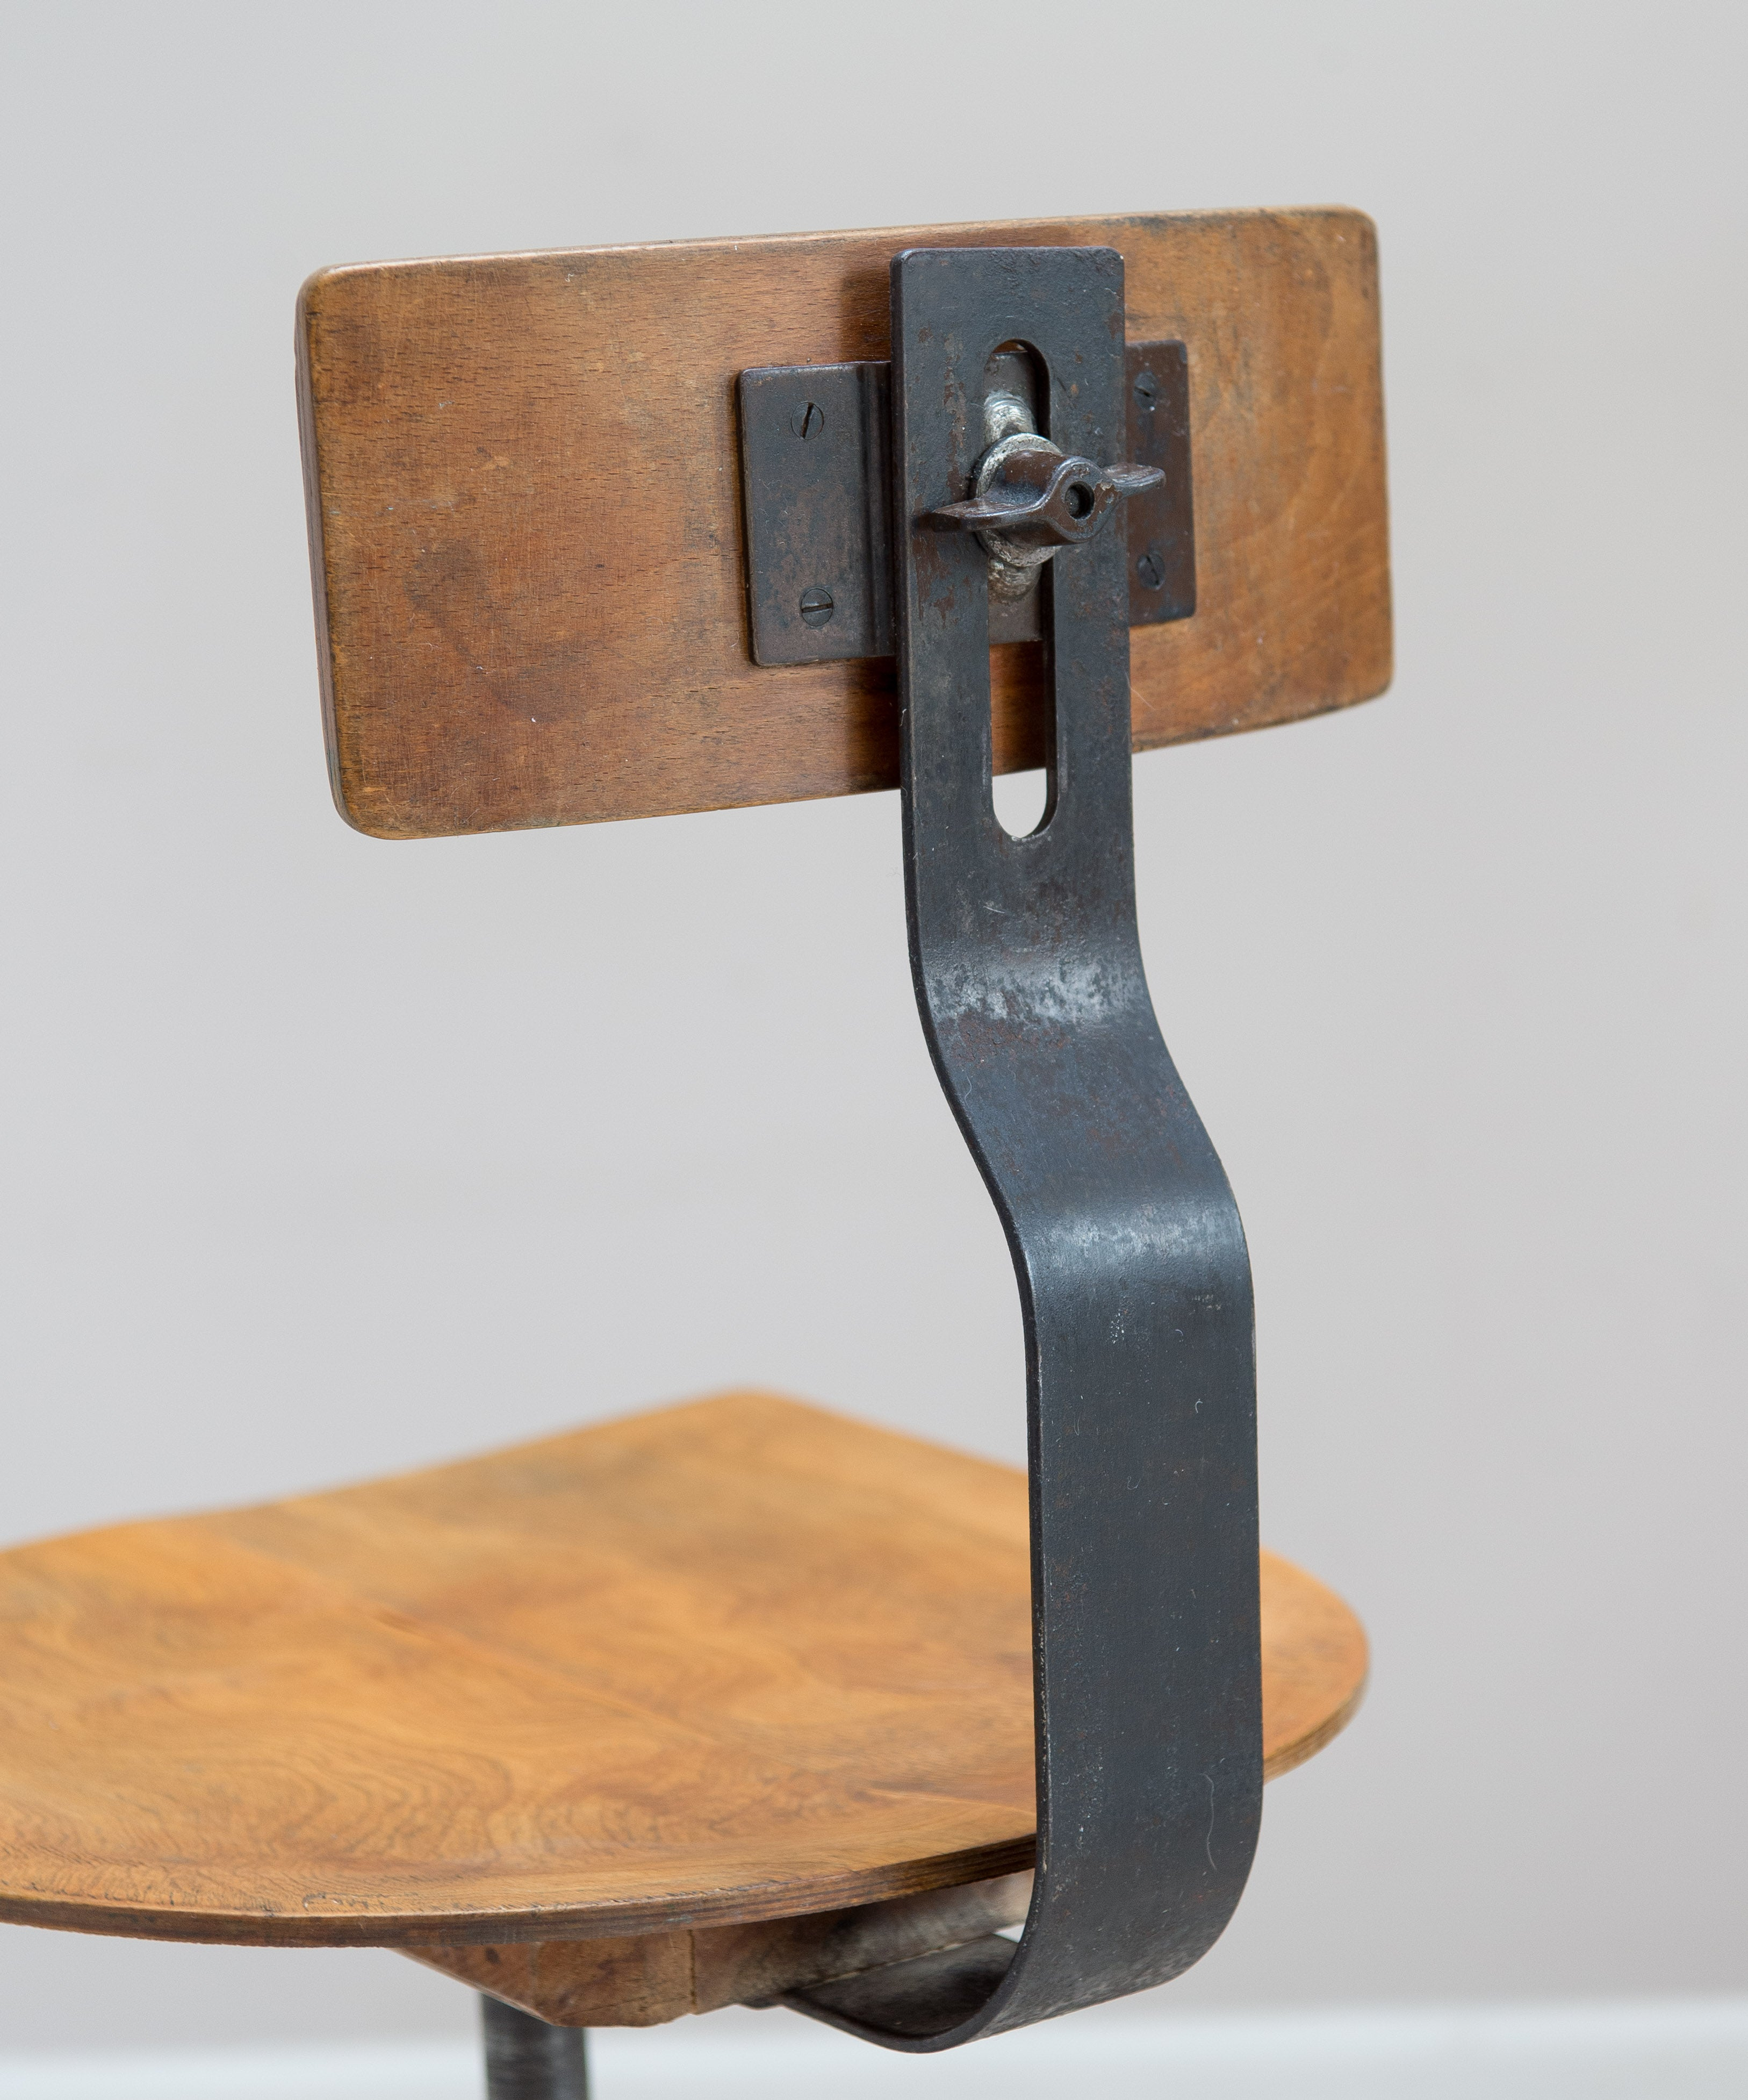 Singer Machinist Or Work Stool/Chair. 1930s English